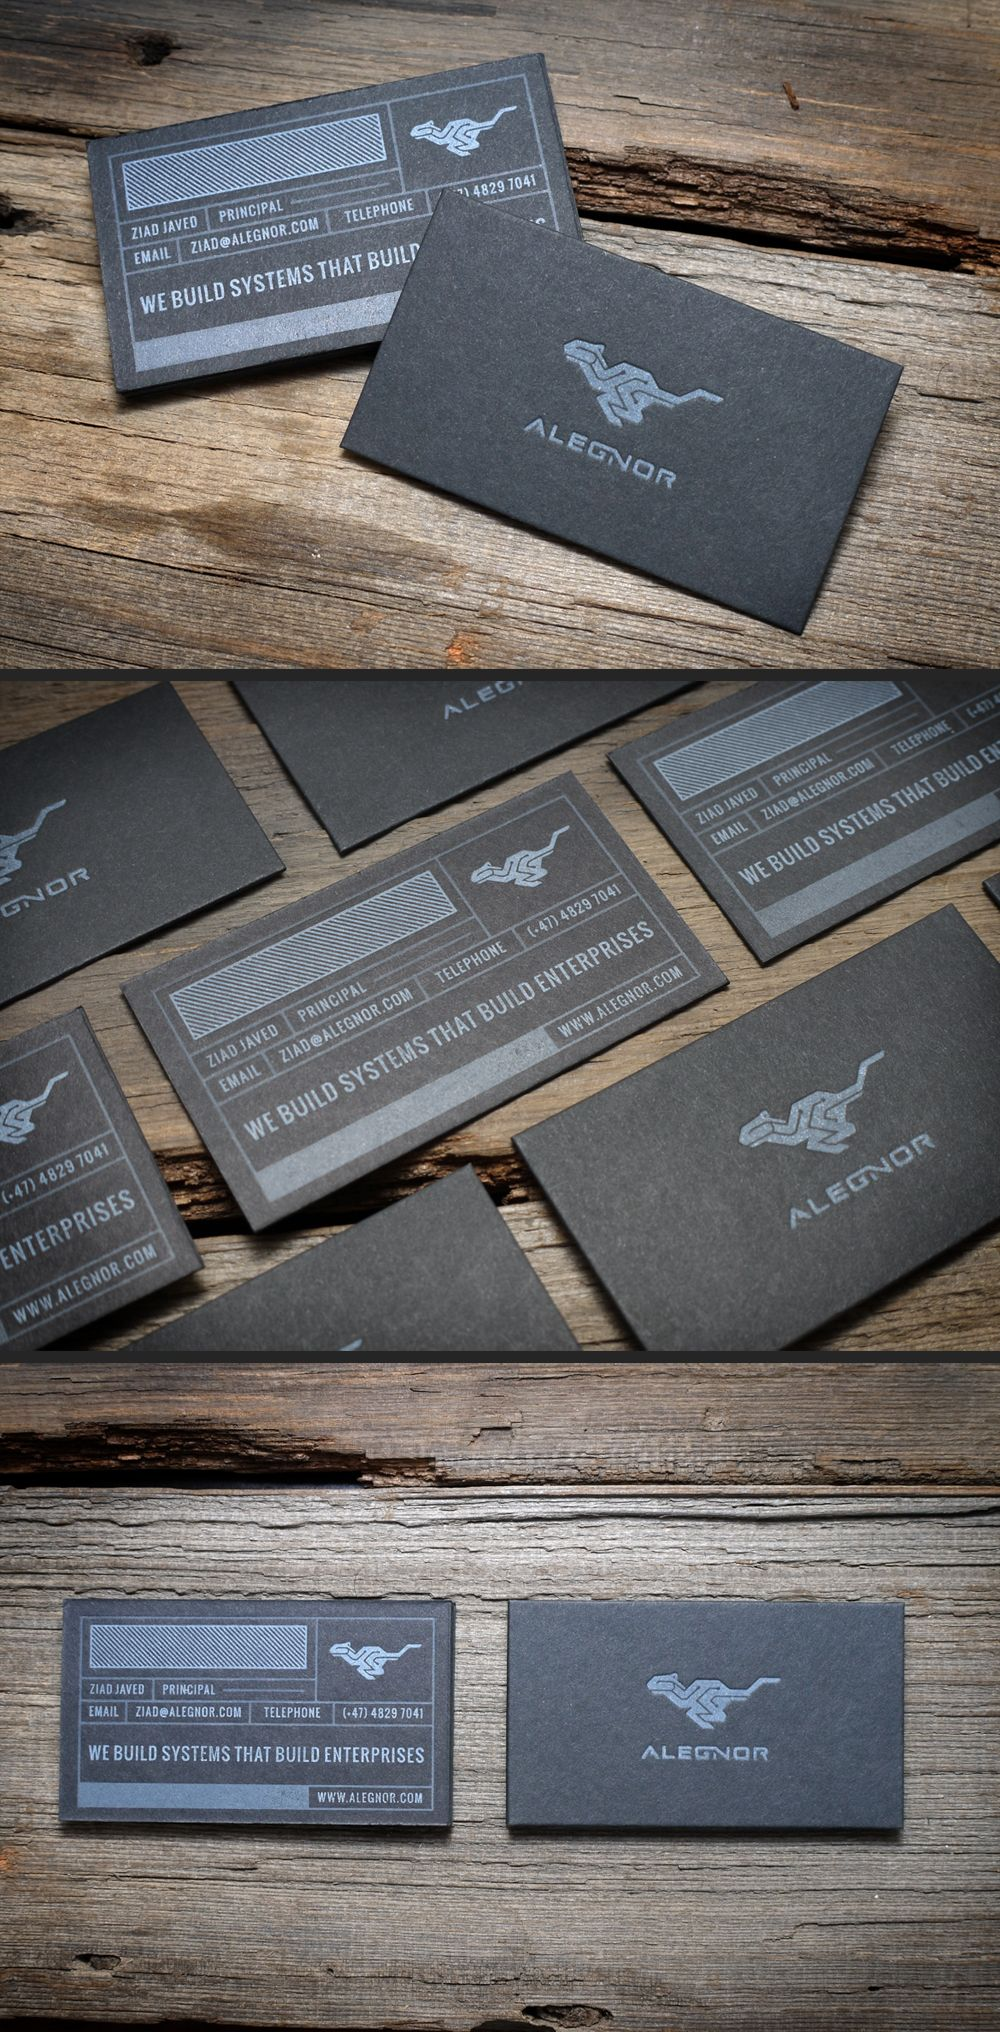 Letterpress business cards by printgrain via creattica graphic business card templates designs from graphicriver reheart Images